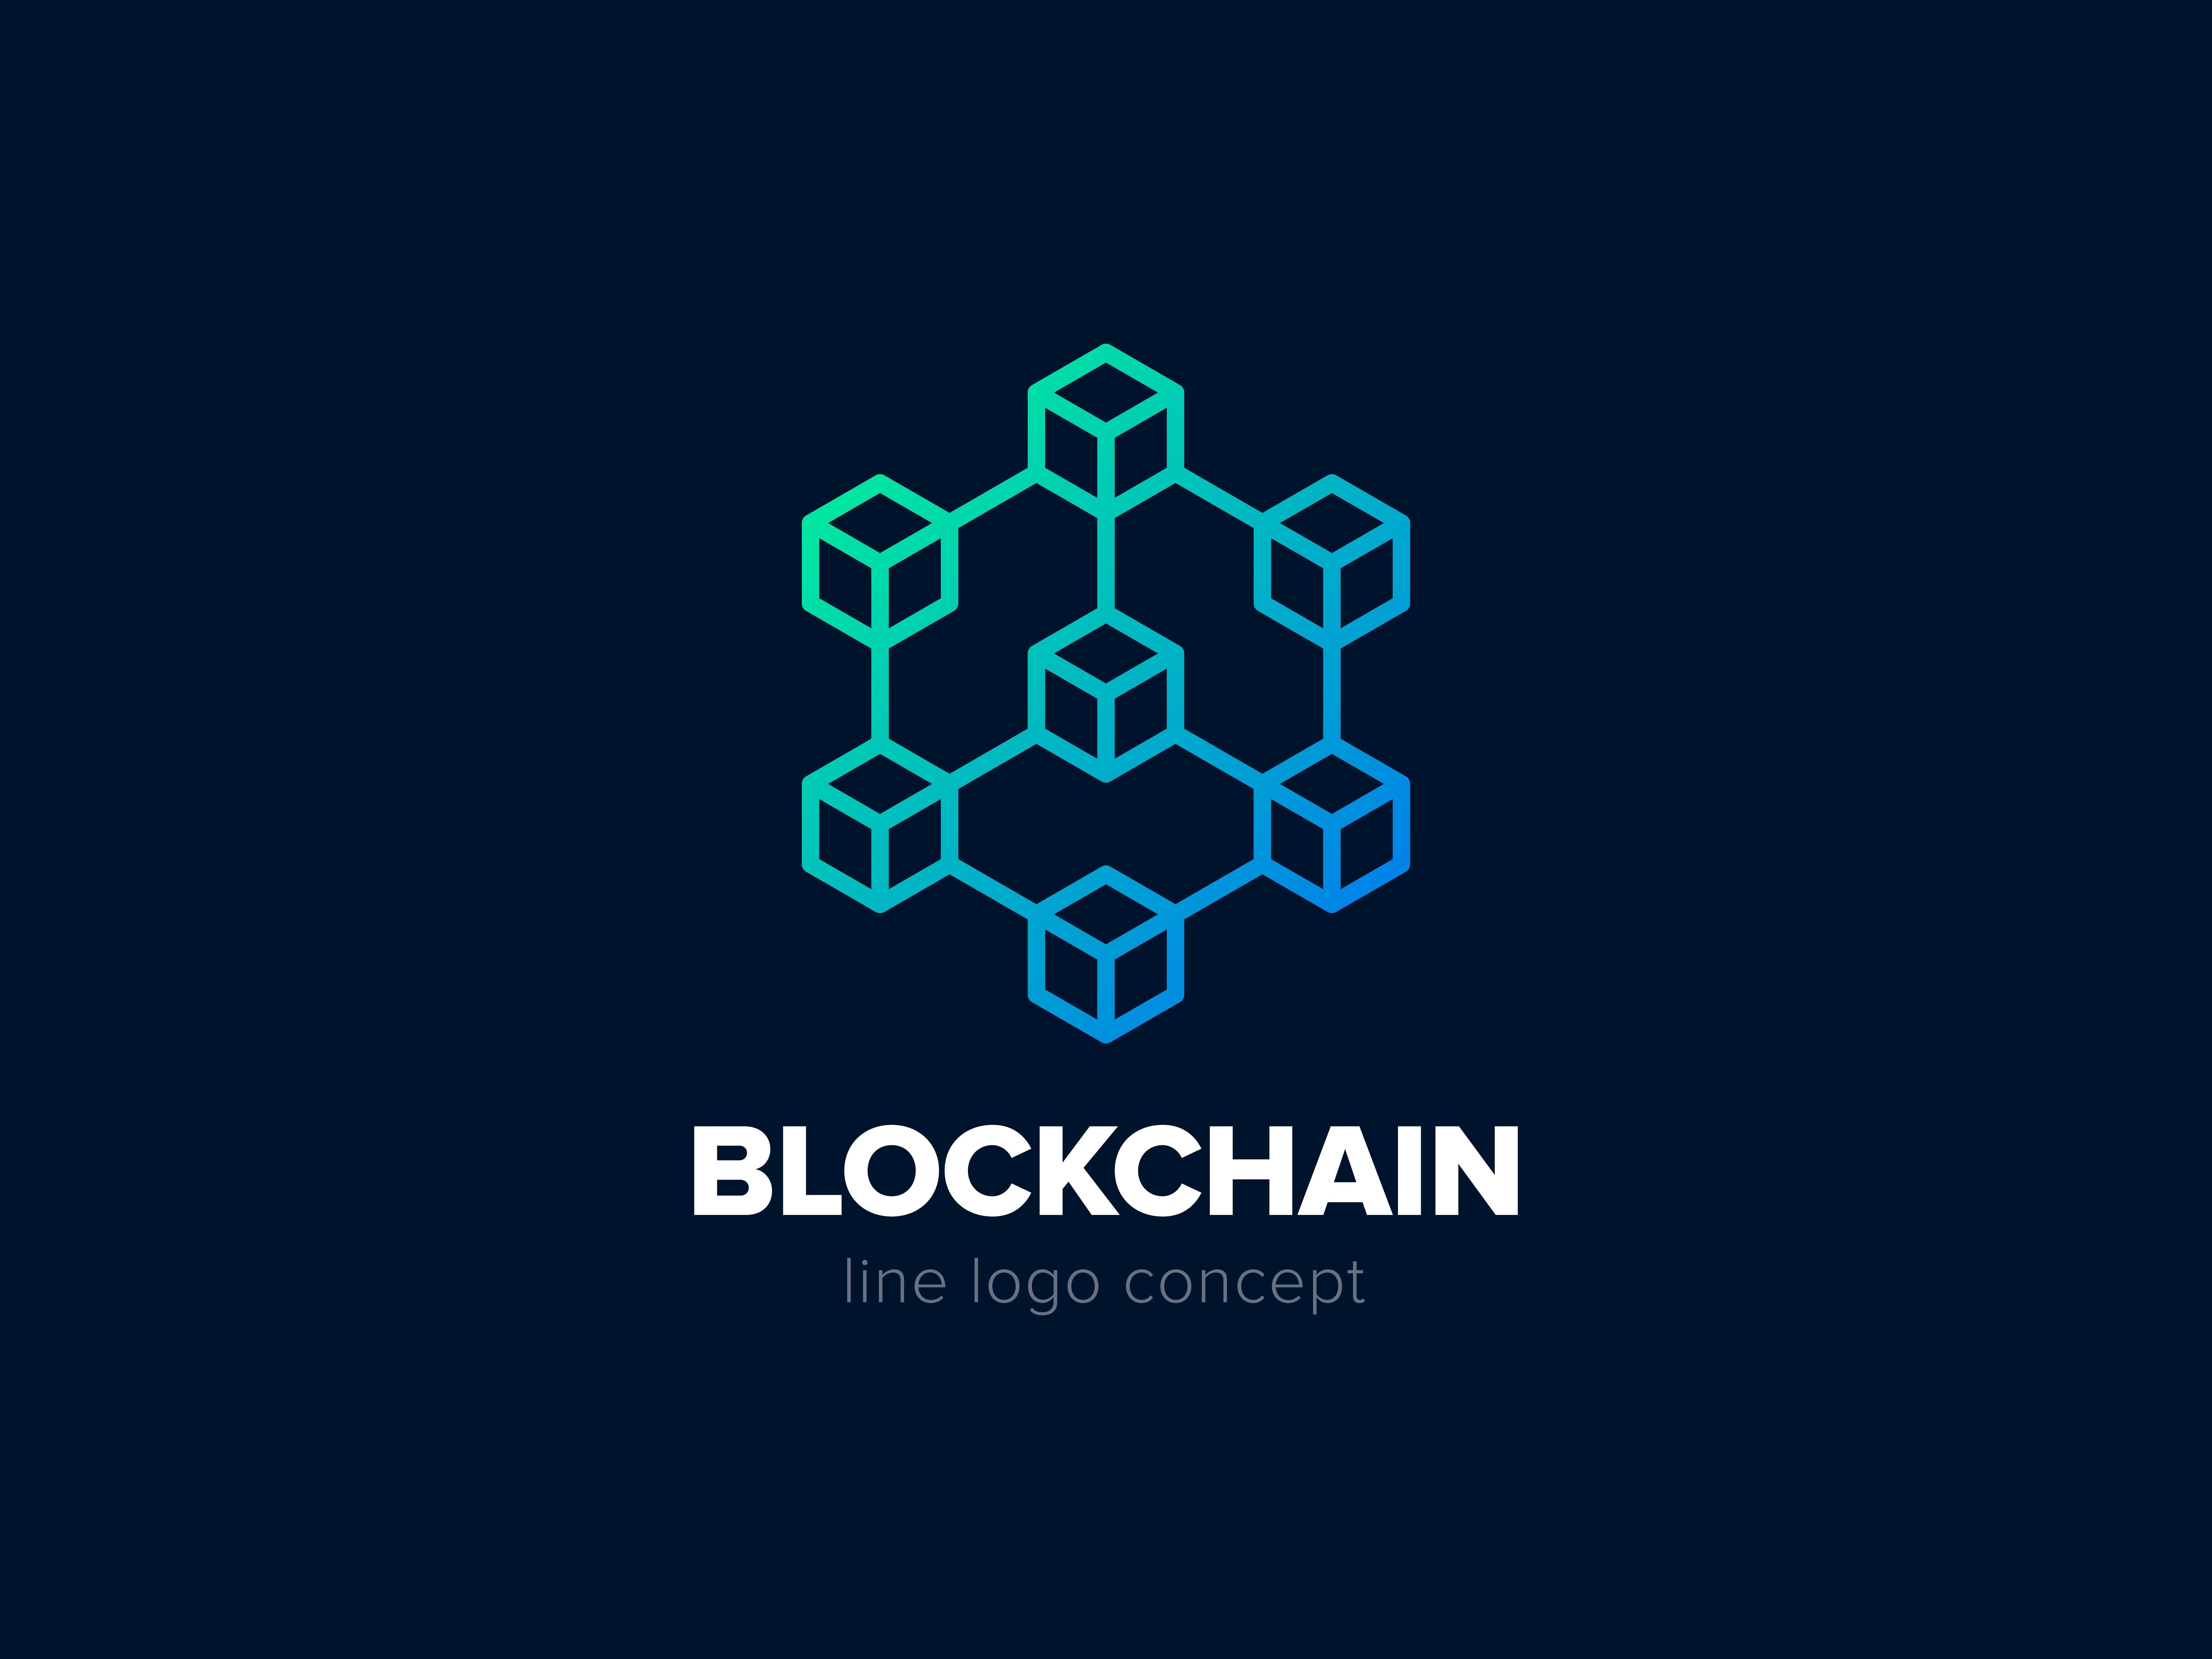 Blockchain Training in Hyderabad India for Beginners-Bitcoin training(June 19-July 5)-introduction to cryptocurrency-ico-ethereum-hyperledger(Weekday course)